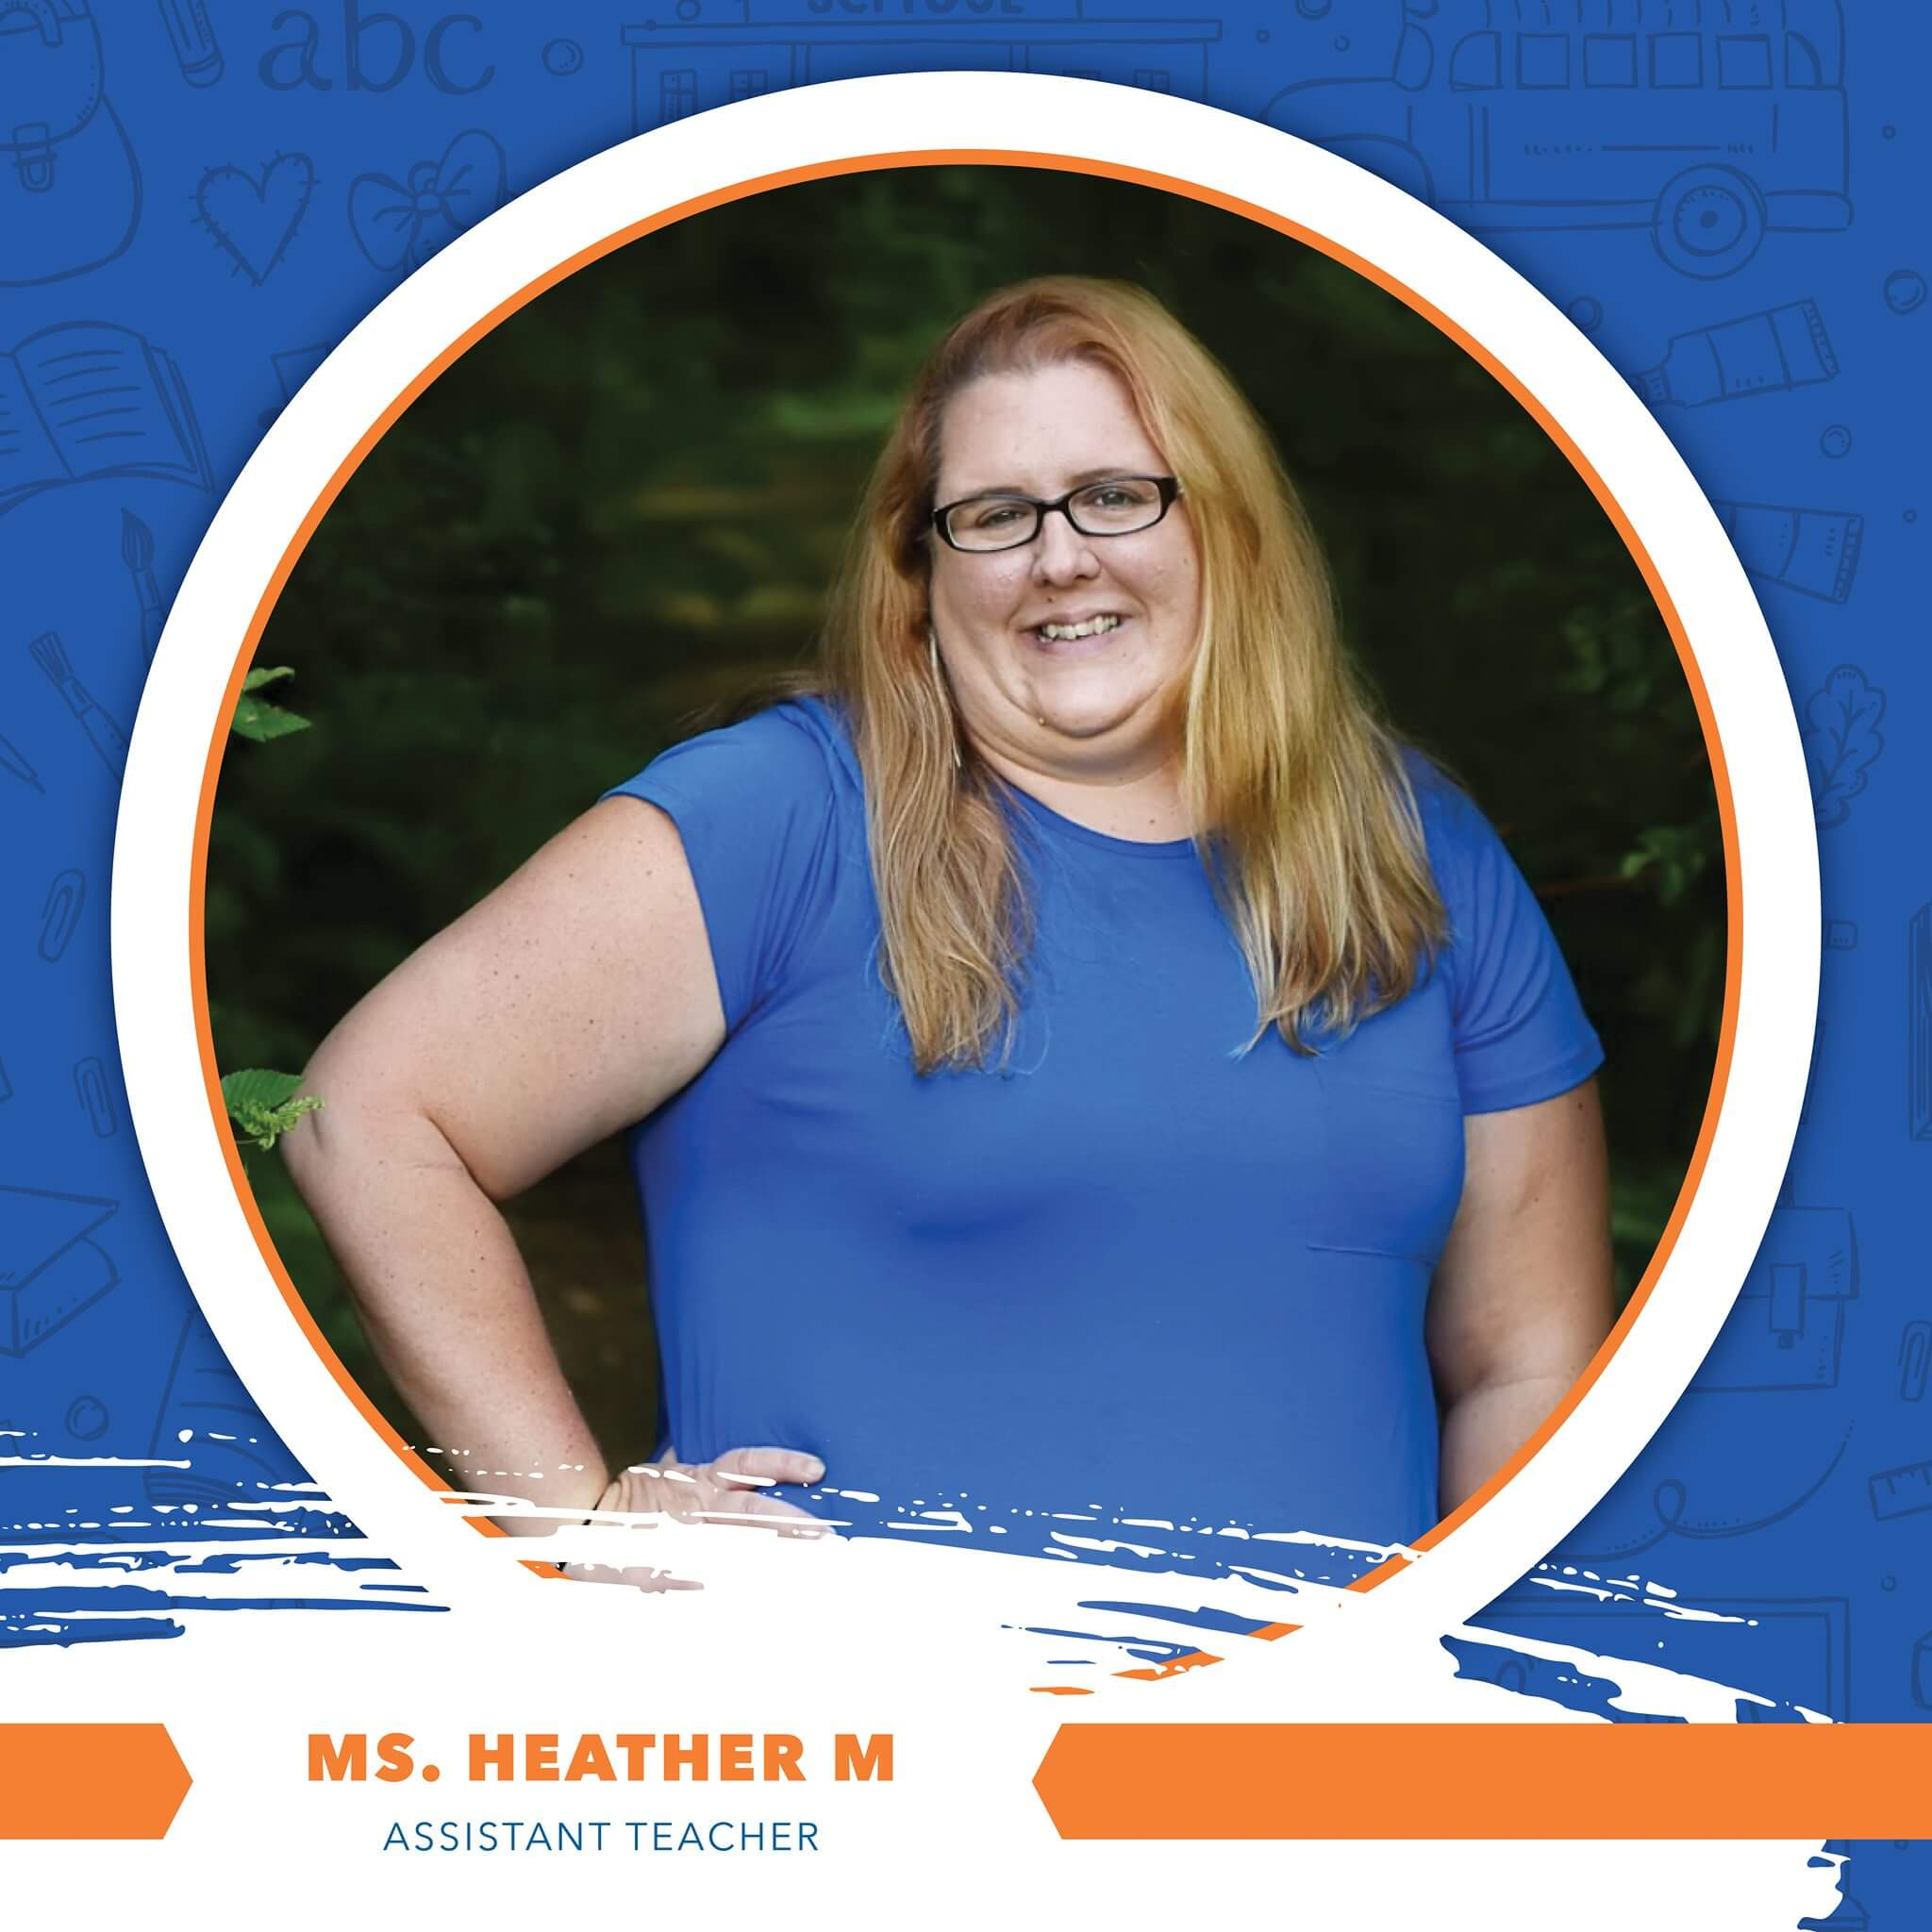 Ms. Heather - Assistant Teacher